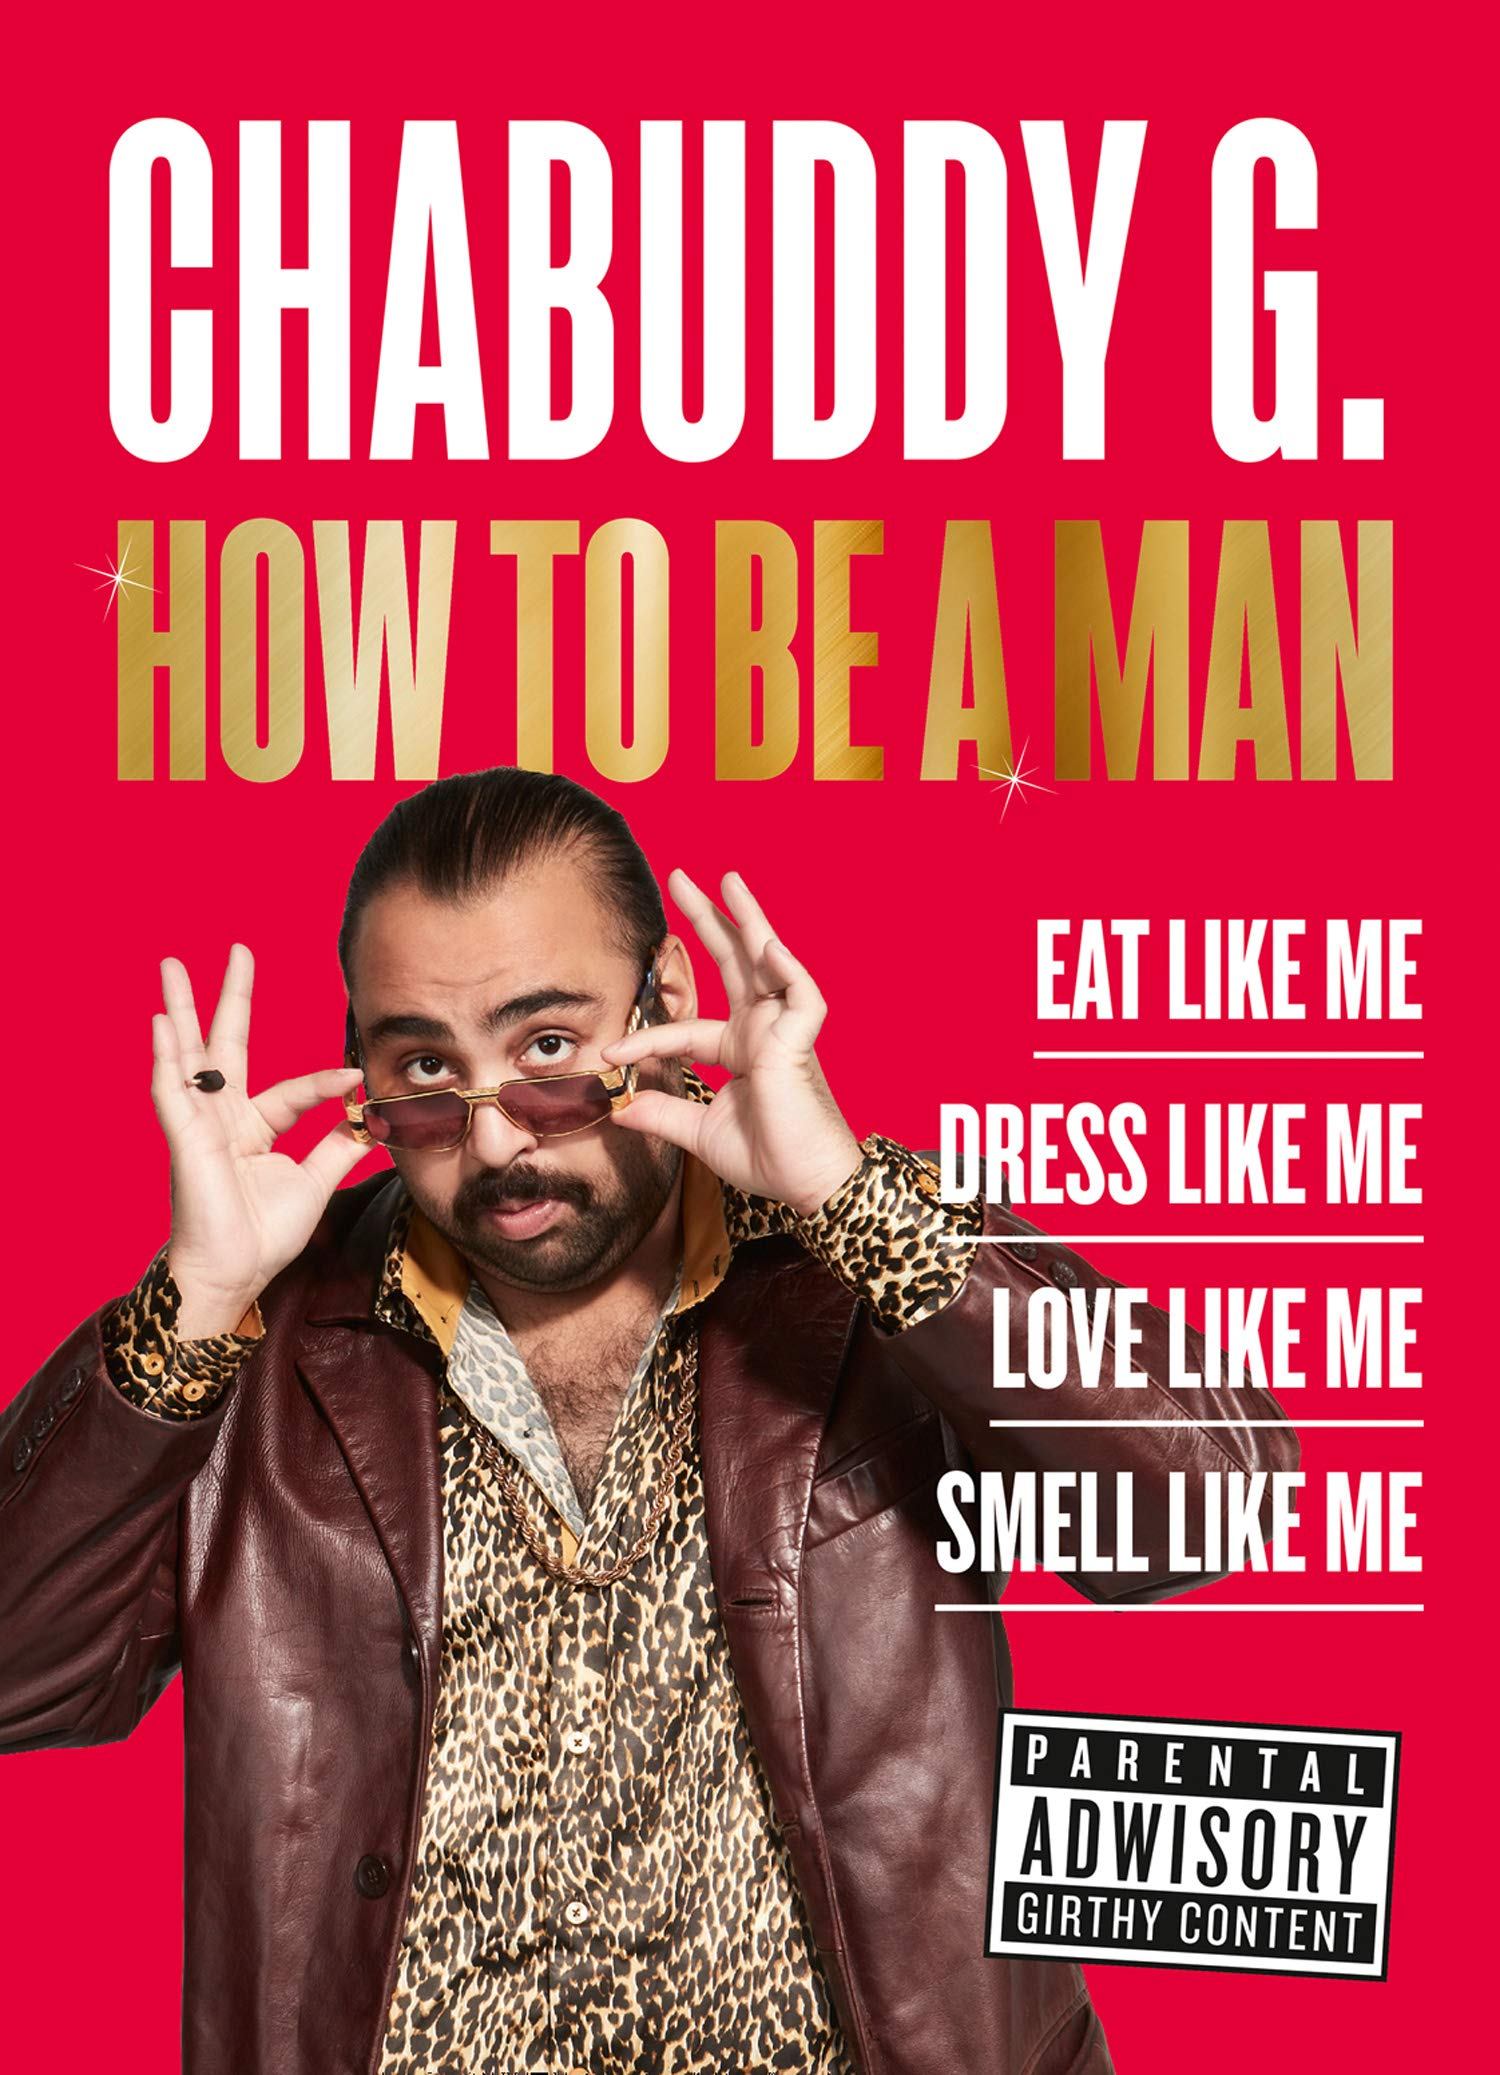 Buy How to Be a Man by Chabuddy G